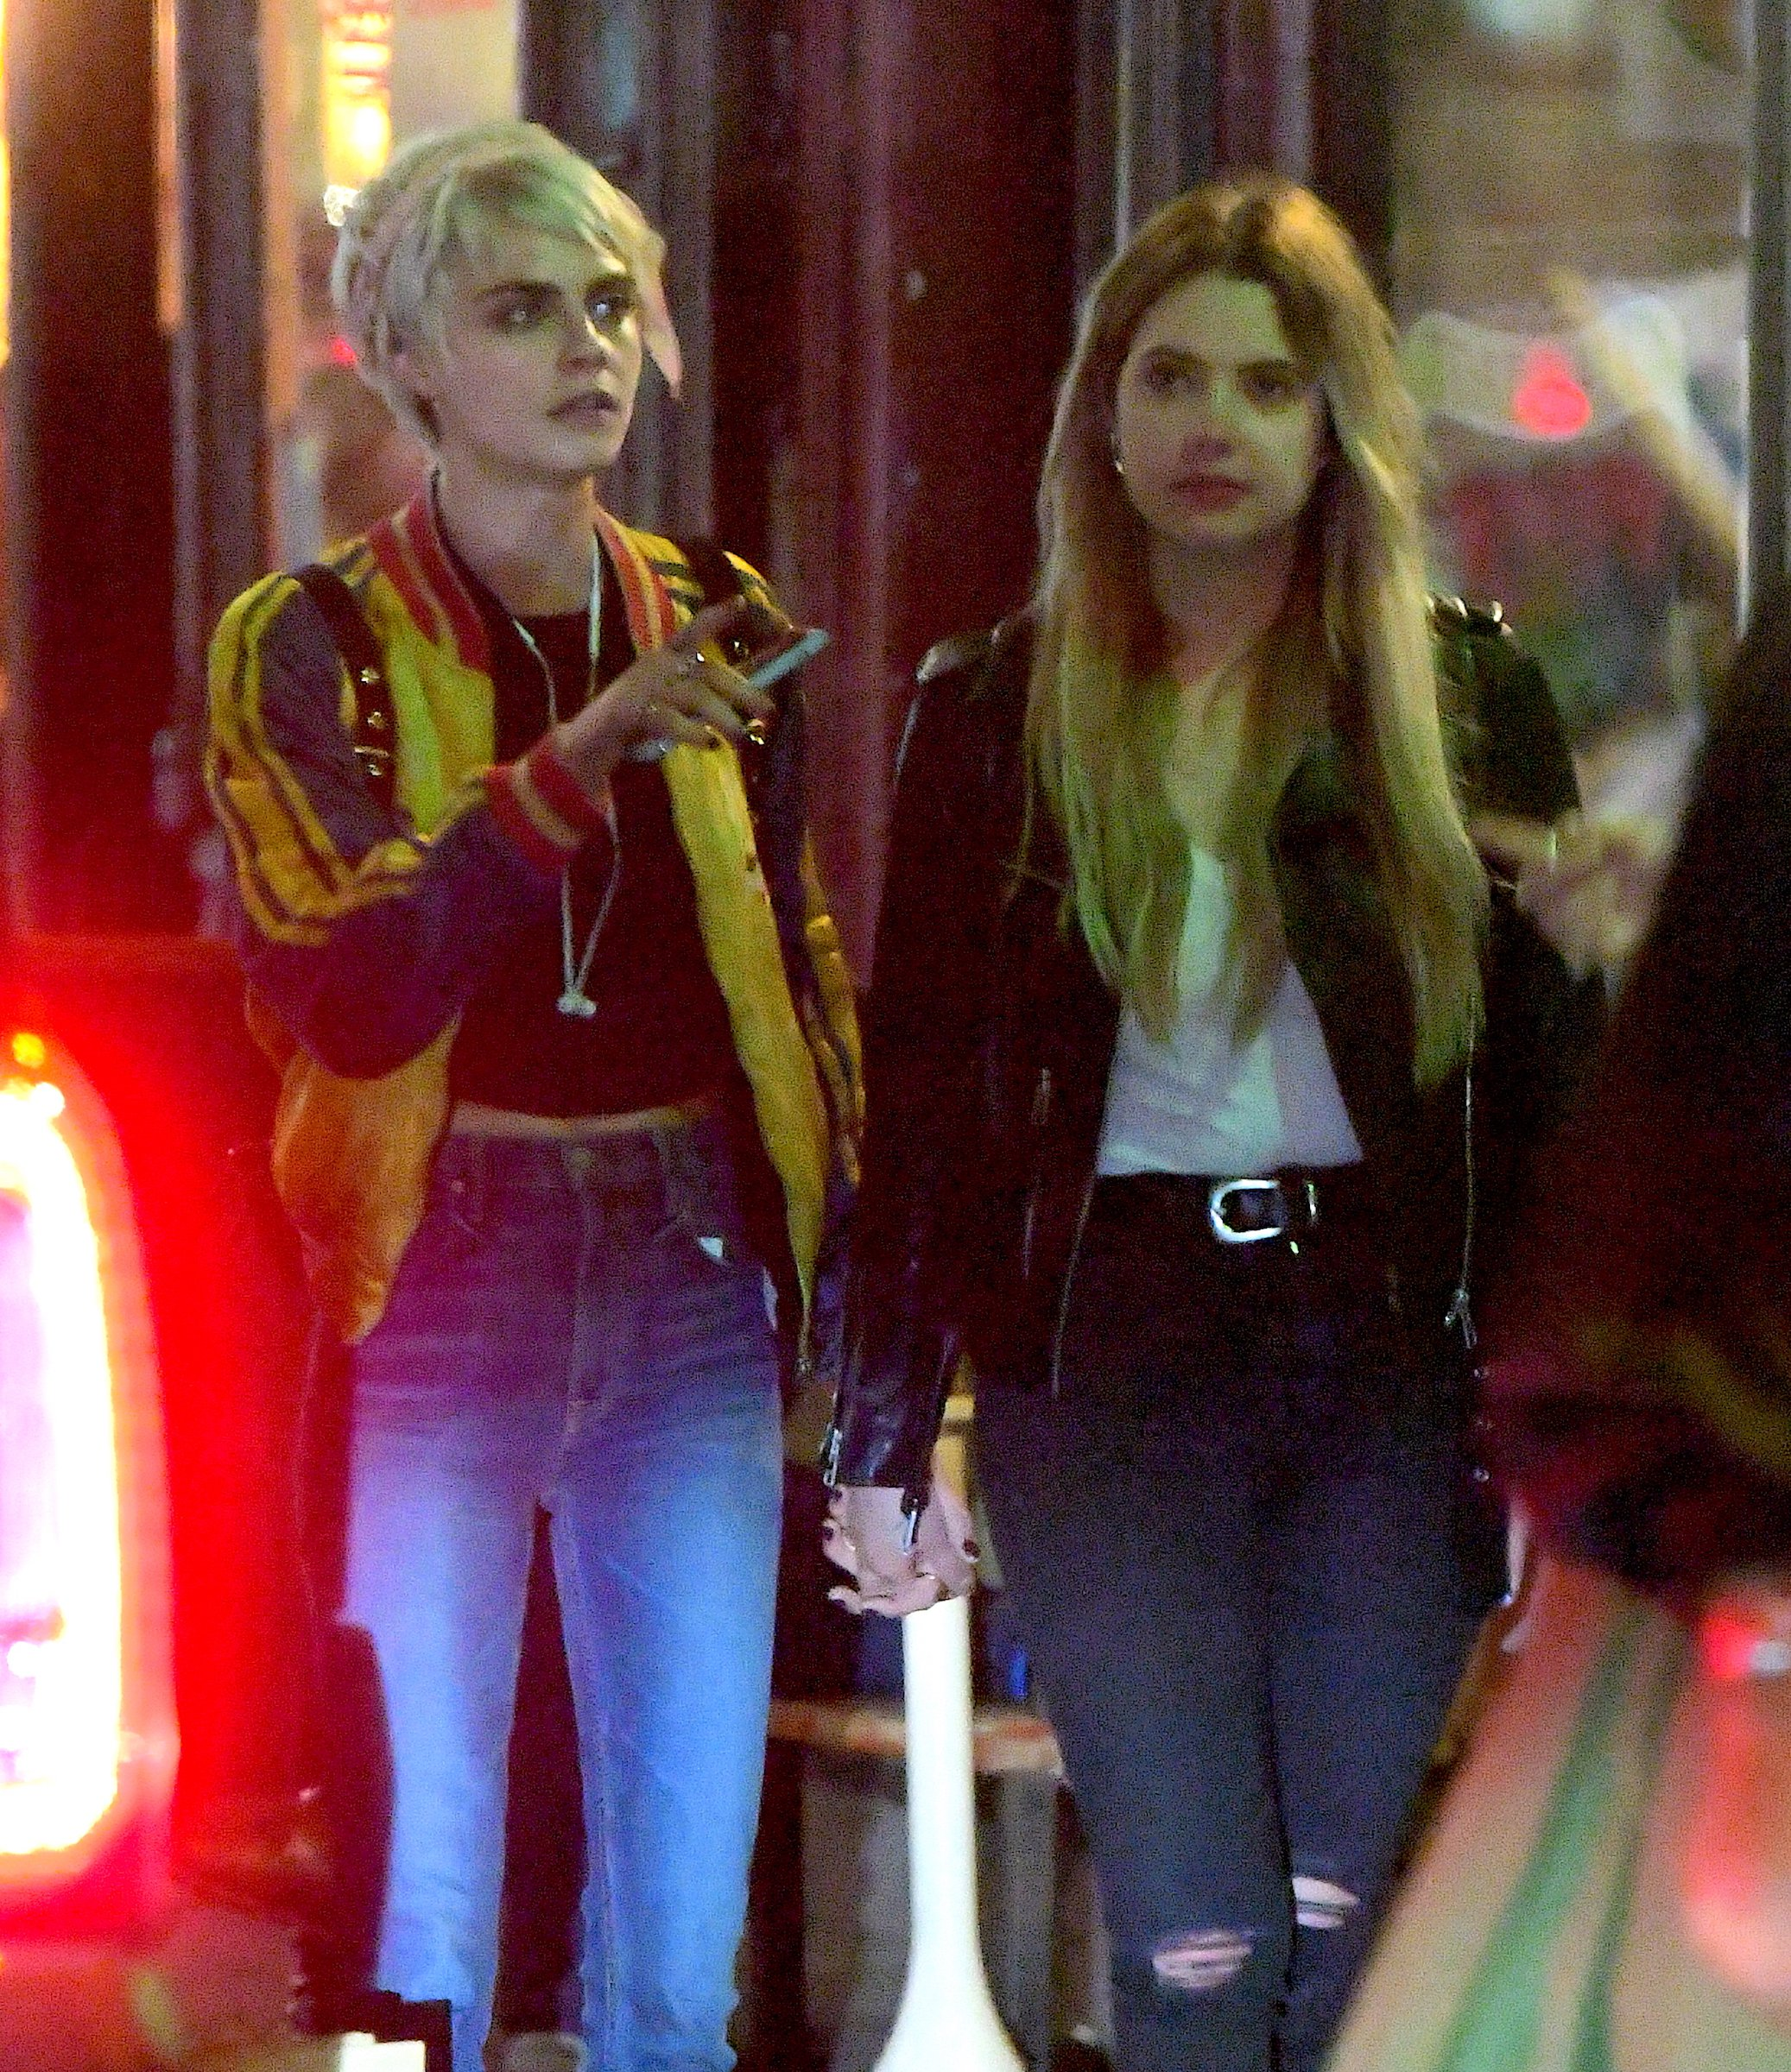 **UK WEB ??300 SET FEE**UK PAPERS MIN FEE ??300PP** EXCLUSIVE: **PREMIUM EXCLUSIVE RATES** The pair were spotted leaving Lucky Strike, a small bar/ restaurant in Soho with a few pals. Cara and Ashley emerged holding hands at 2am after enjoying dinner and drinks inside. They walked down the street to the Soho Grand Hotel. As they walked holding each other's hands, they giggled before leaning in for a quick kiss. They trailed behind their friends, looking in Love. They partied at the Hotel lounge until 4am. They could be seen waiting for their car inside the hotel, but they opted to try and make a quick getaway in a decoy car. They ran out the back door of the hotel and got into a black SUV together before going back to Ashley's apartment for the night. Ref: SPL1699573 180518 EXCLUSIVE Picture by: 247PAPS.TV / Splash News Splash News and Pictures Los Angeles: 310-821-2666 New York: 212-619-2666 London: 870-934-2666 photodesk@splashnews.com